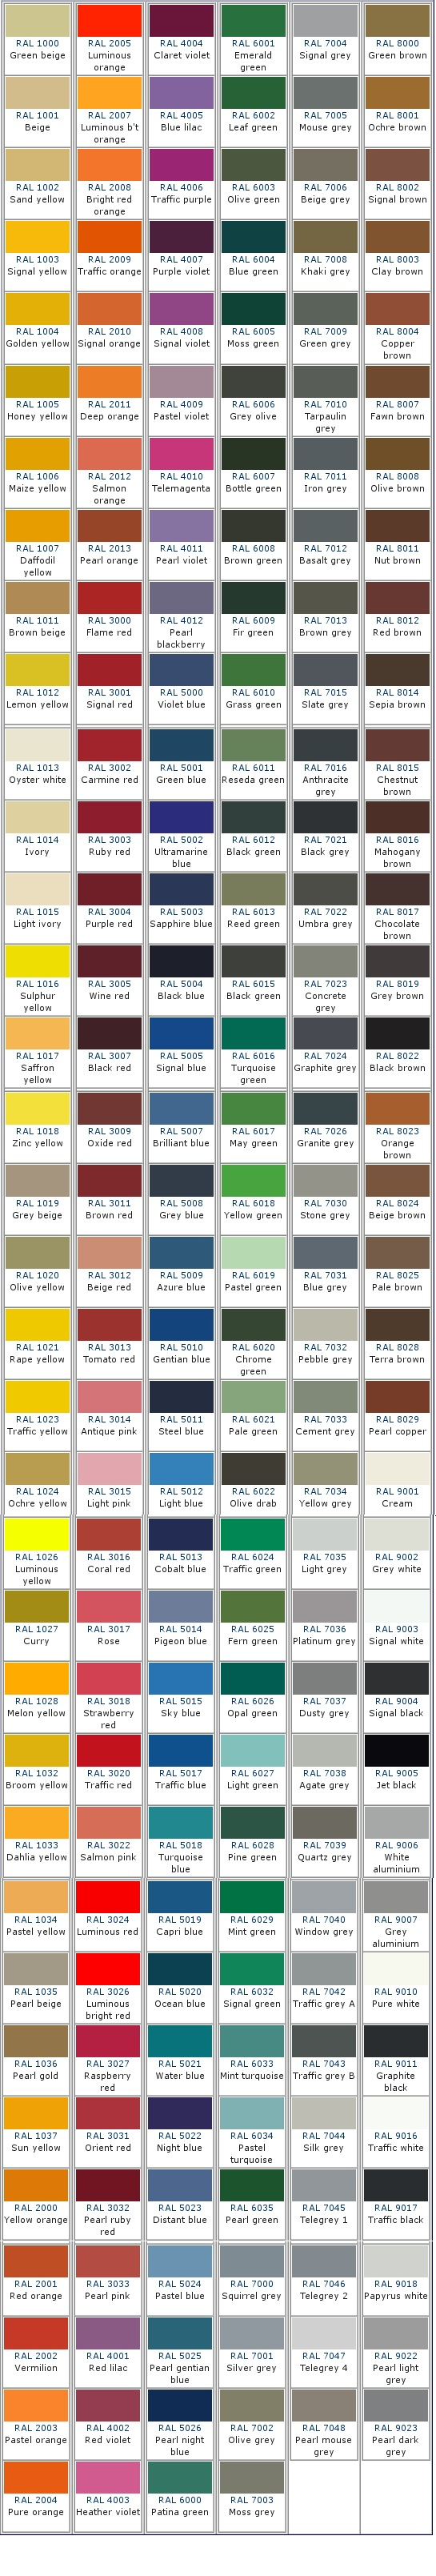 Ral panton general motors blmc paints holts auto custom match click here to view our guide to find your car paint colour code nvjuhfo Choice Image